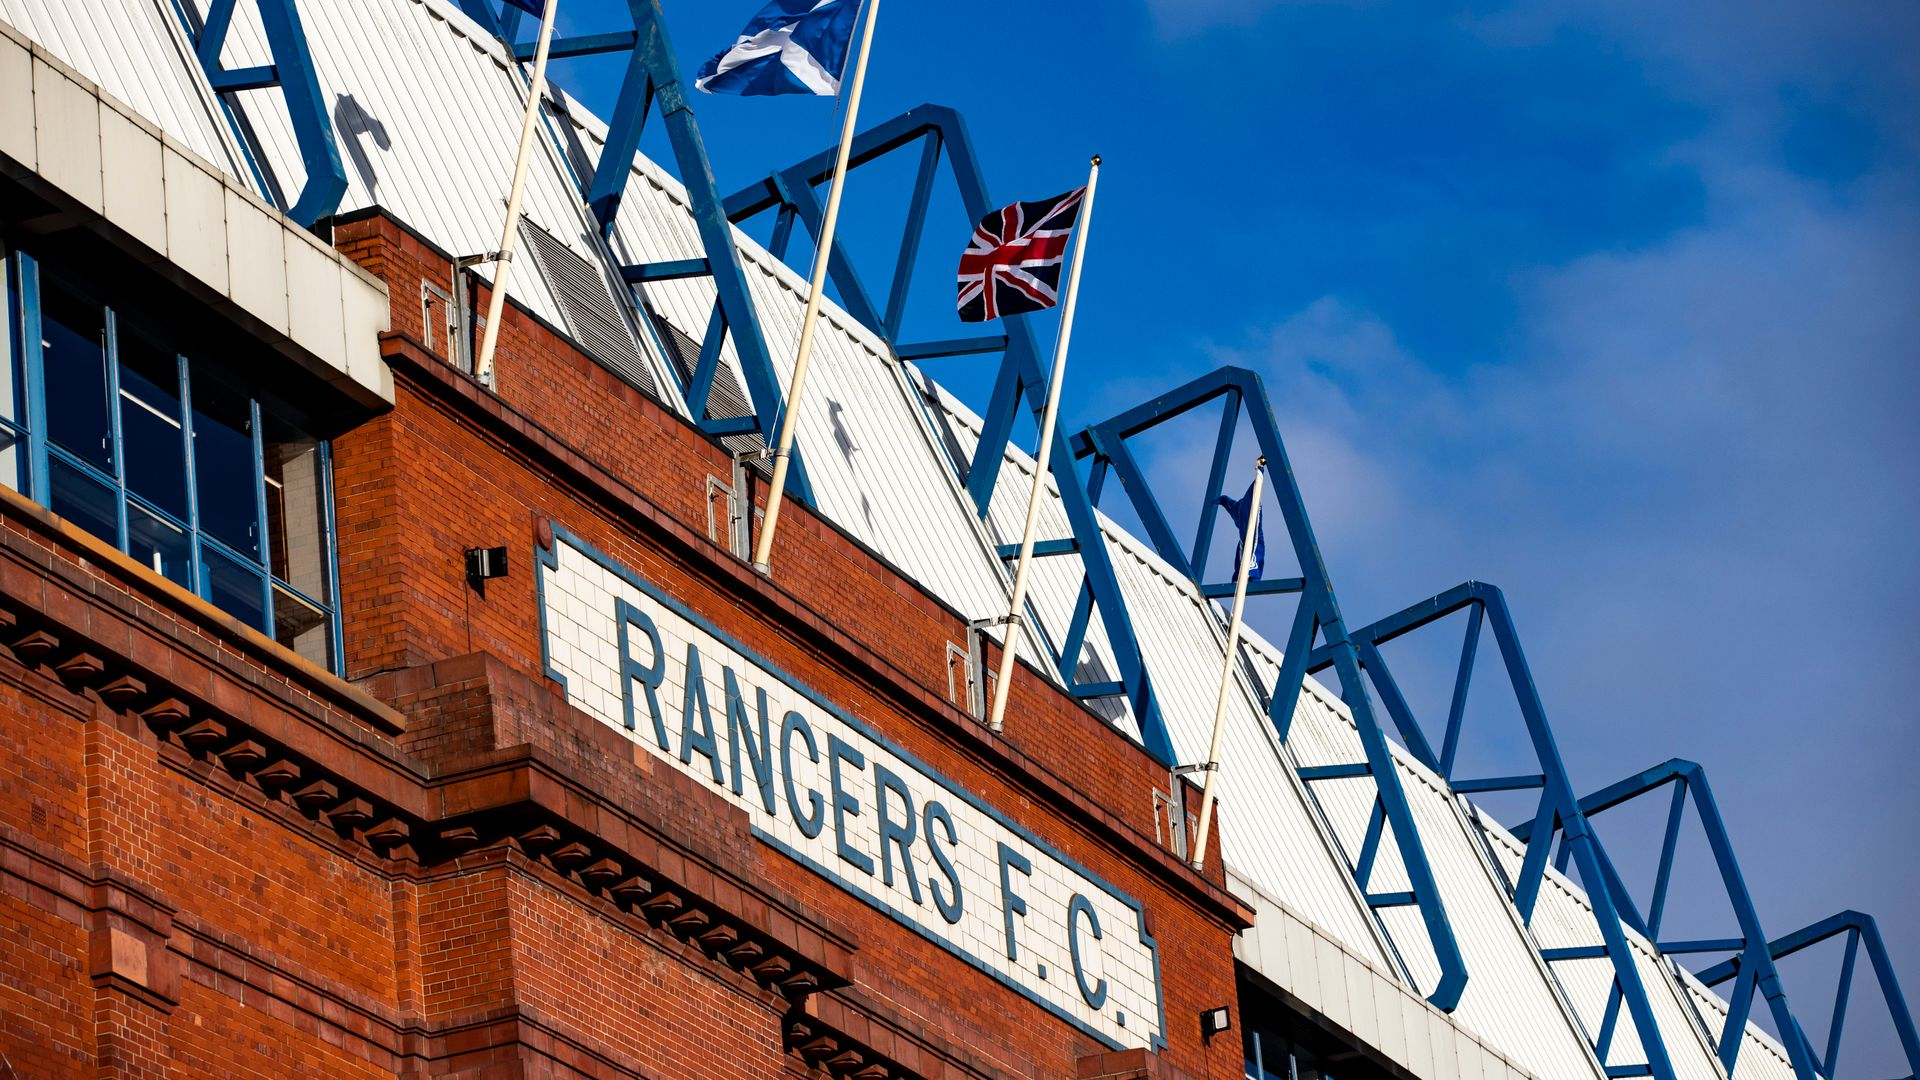 Rangers respond to review of sexual abuse in Scottish football